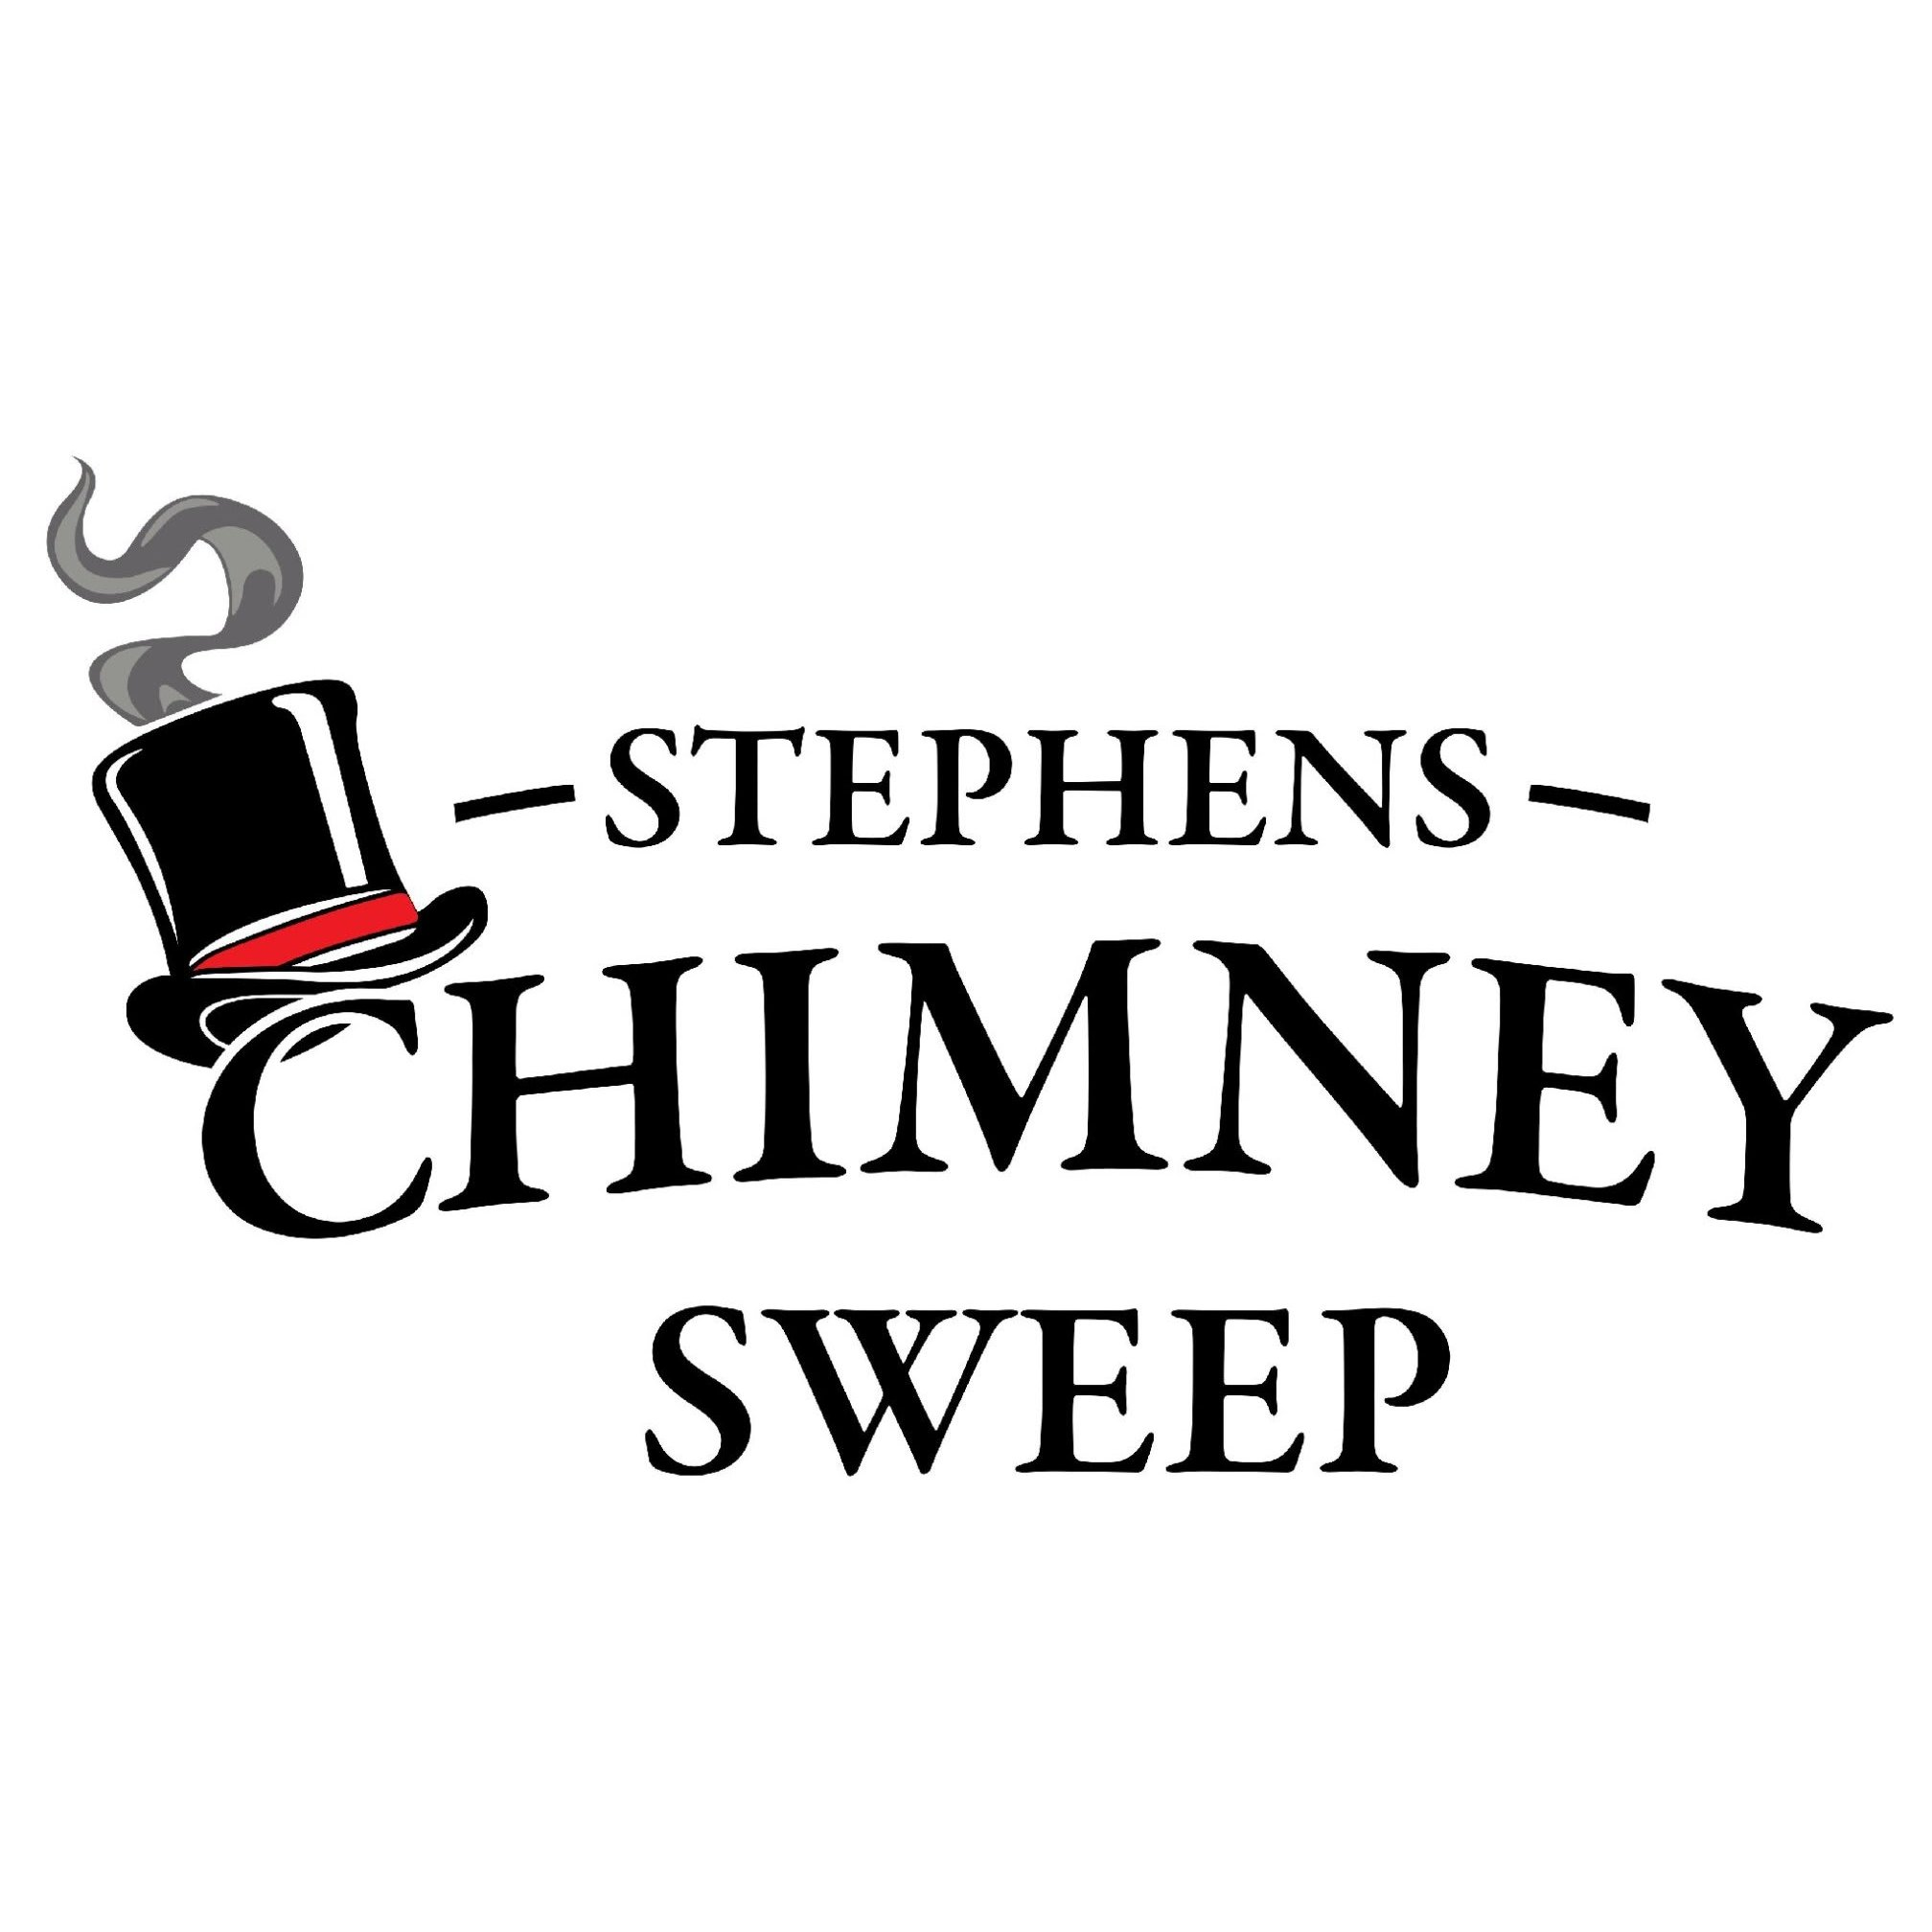 Stephens Chimney Sweep - Dunmow, Essex CM6 2AH - 01371 499349 | ShowMeLocal.com